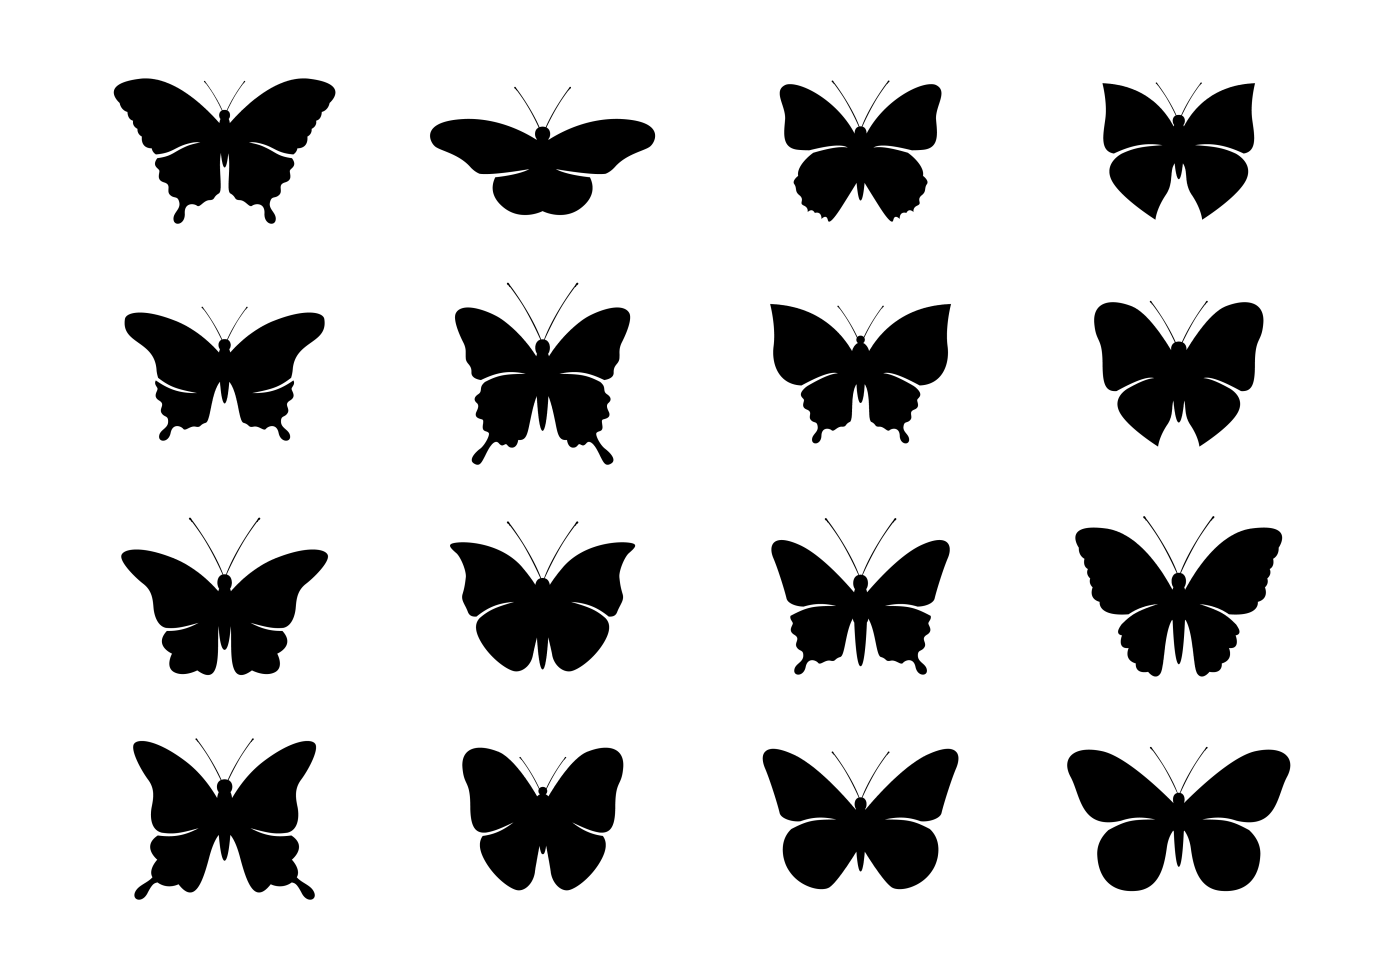 Mariposa Silhouettes Vector